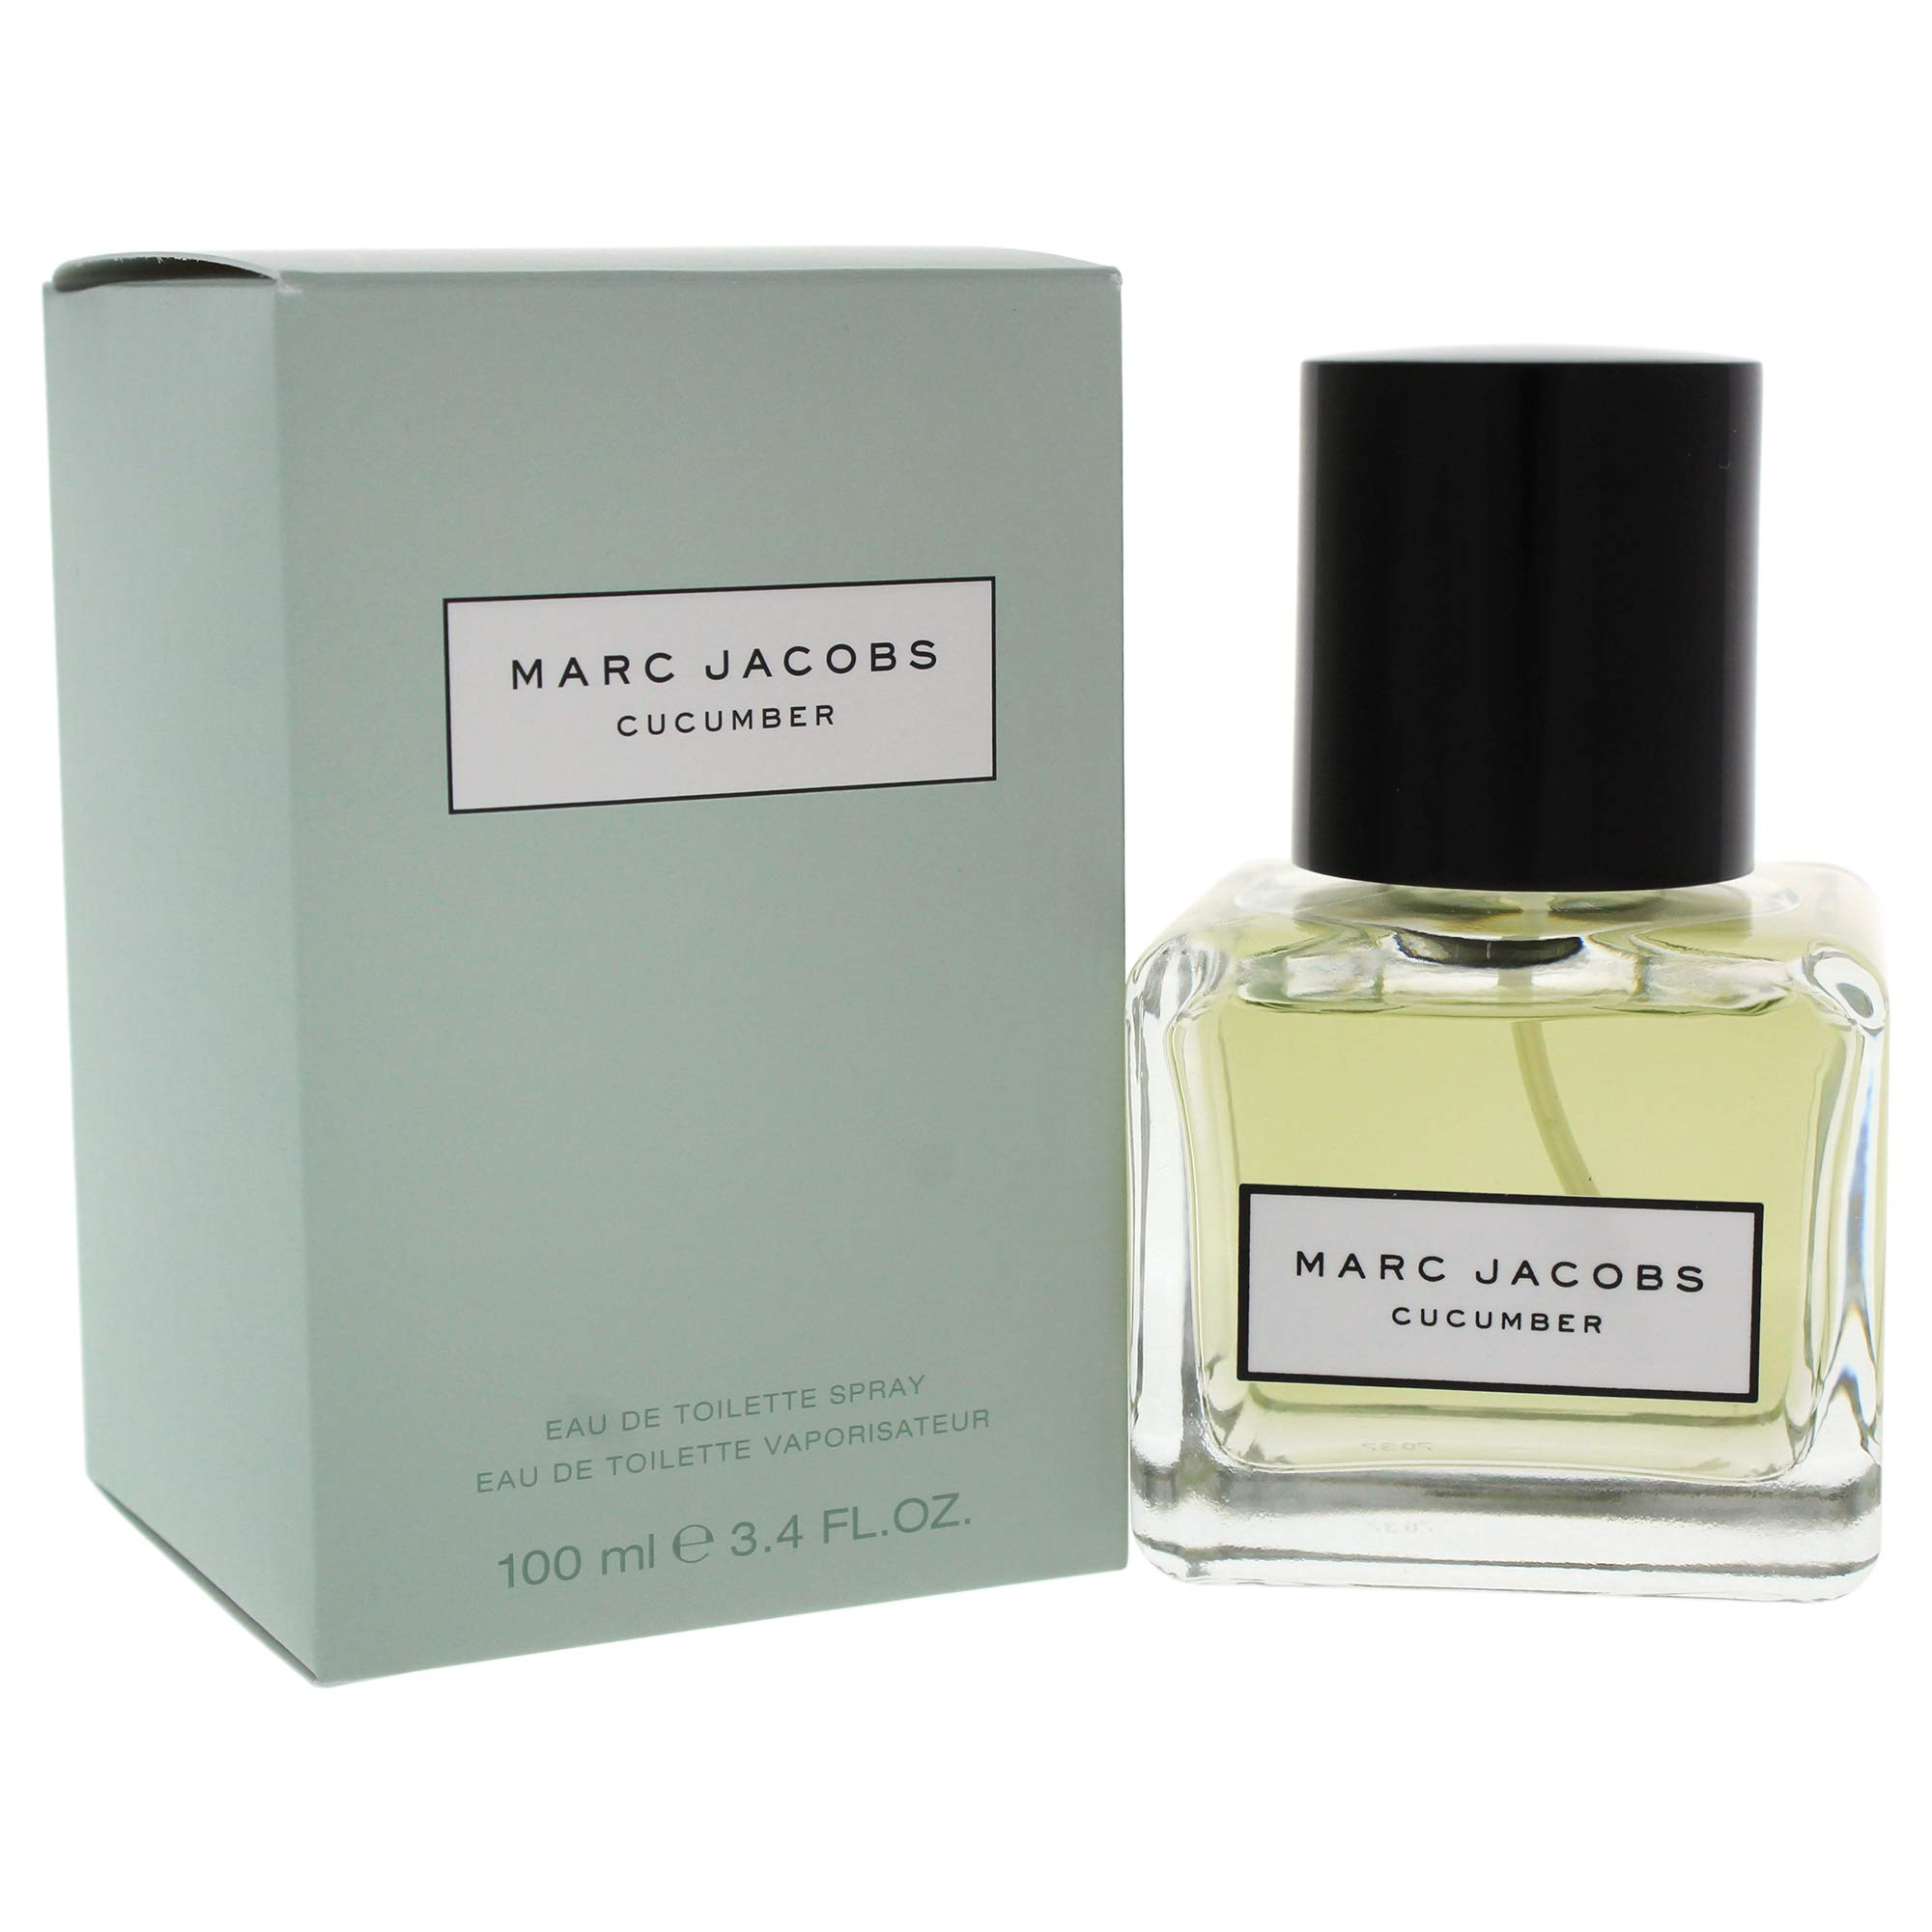 MARC JACOBS Cucumber Eau de Toilette Spray, 3.4 Fluid Ounce